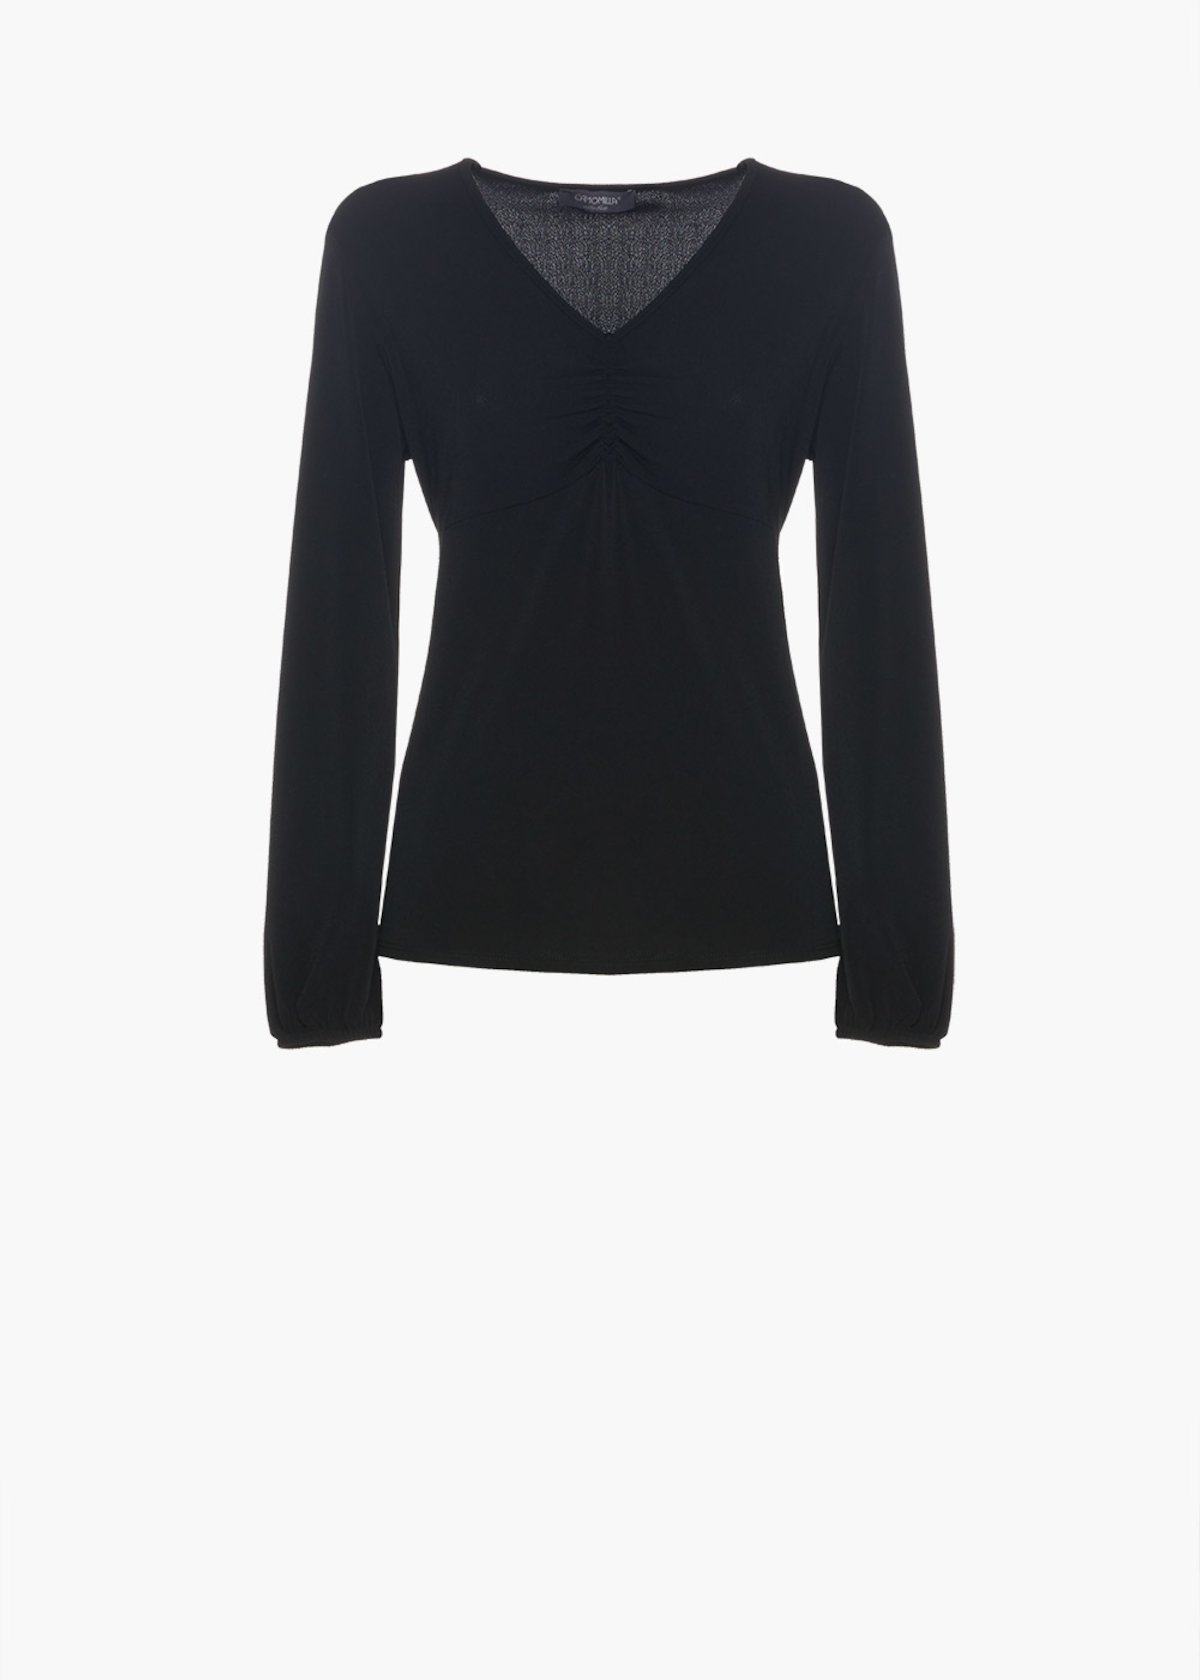 Long-sleeved t-shirt Sibillia with V-neckline and gathering